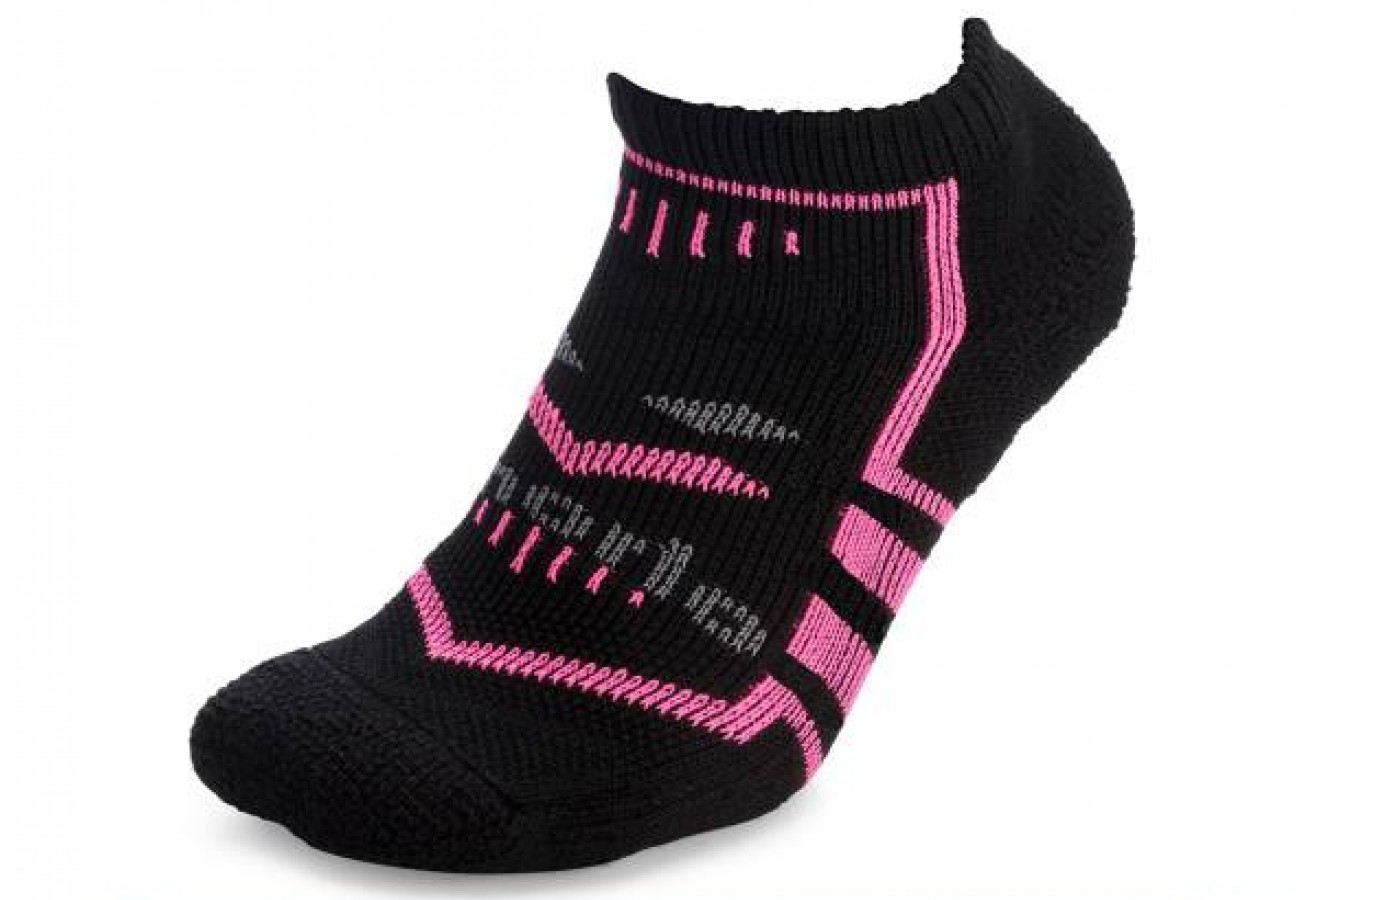 Thorlos Running Socks View